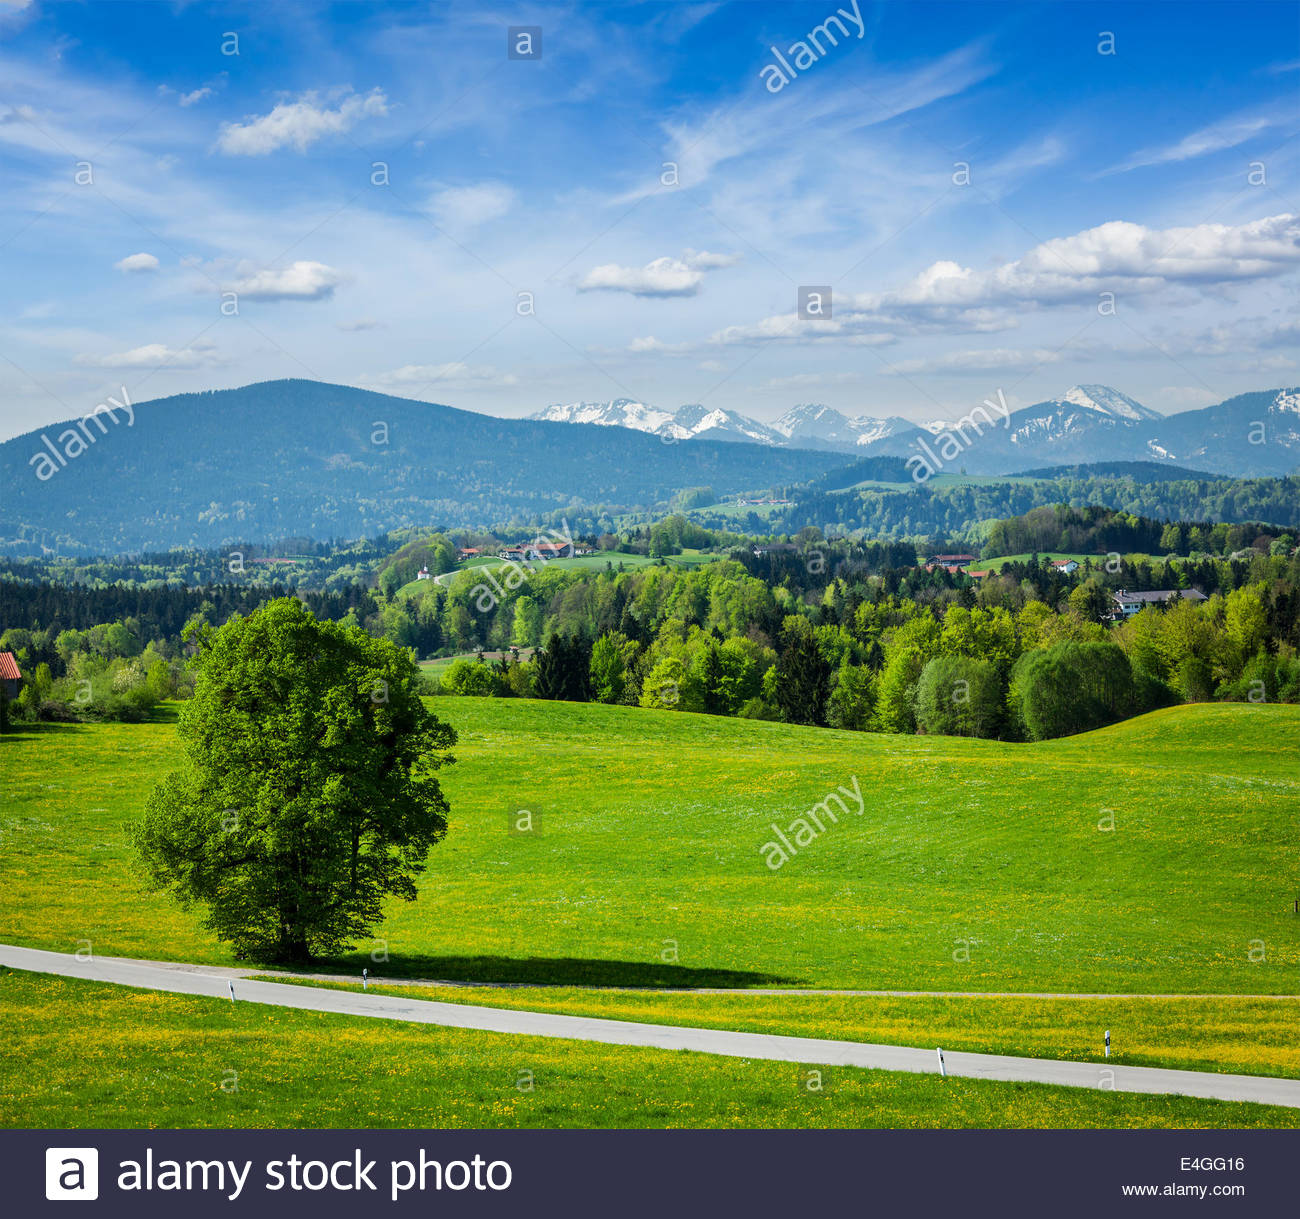 Road in pastoral germany countryside with Bavarian Alps in 1300x1219